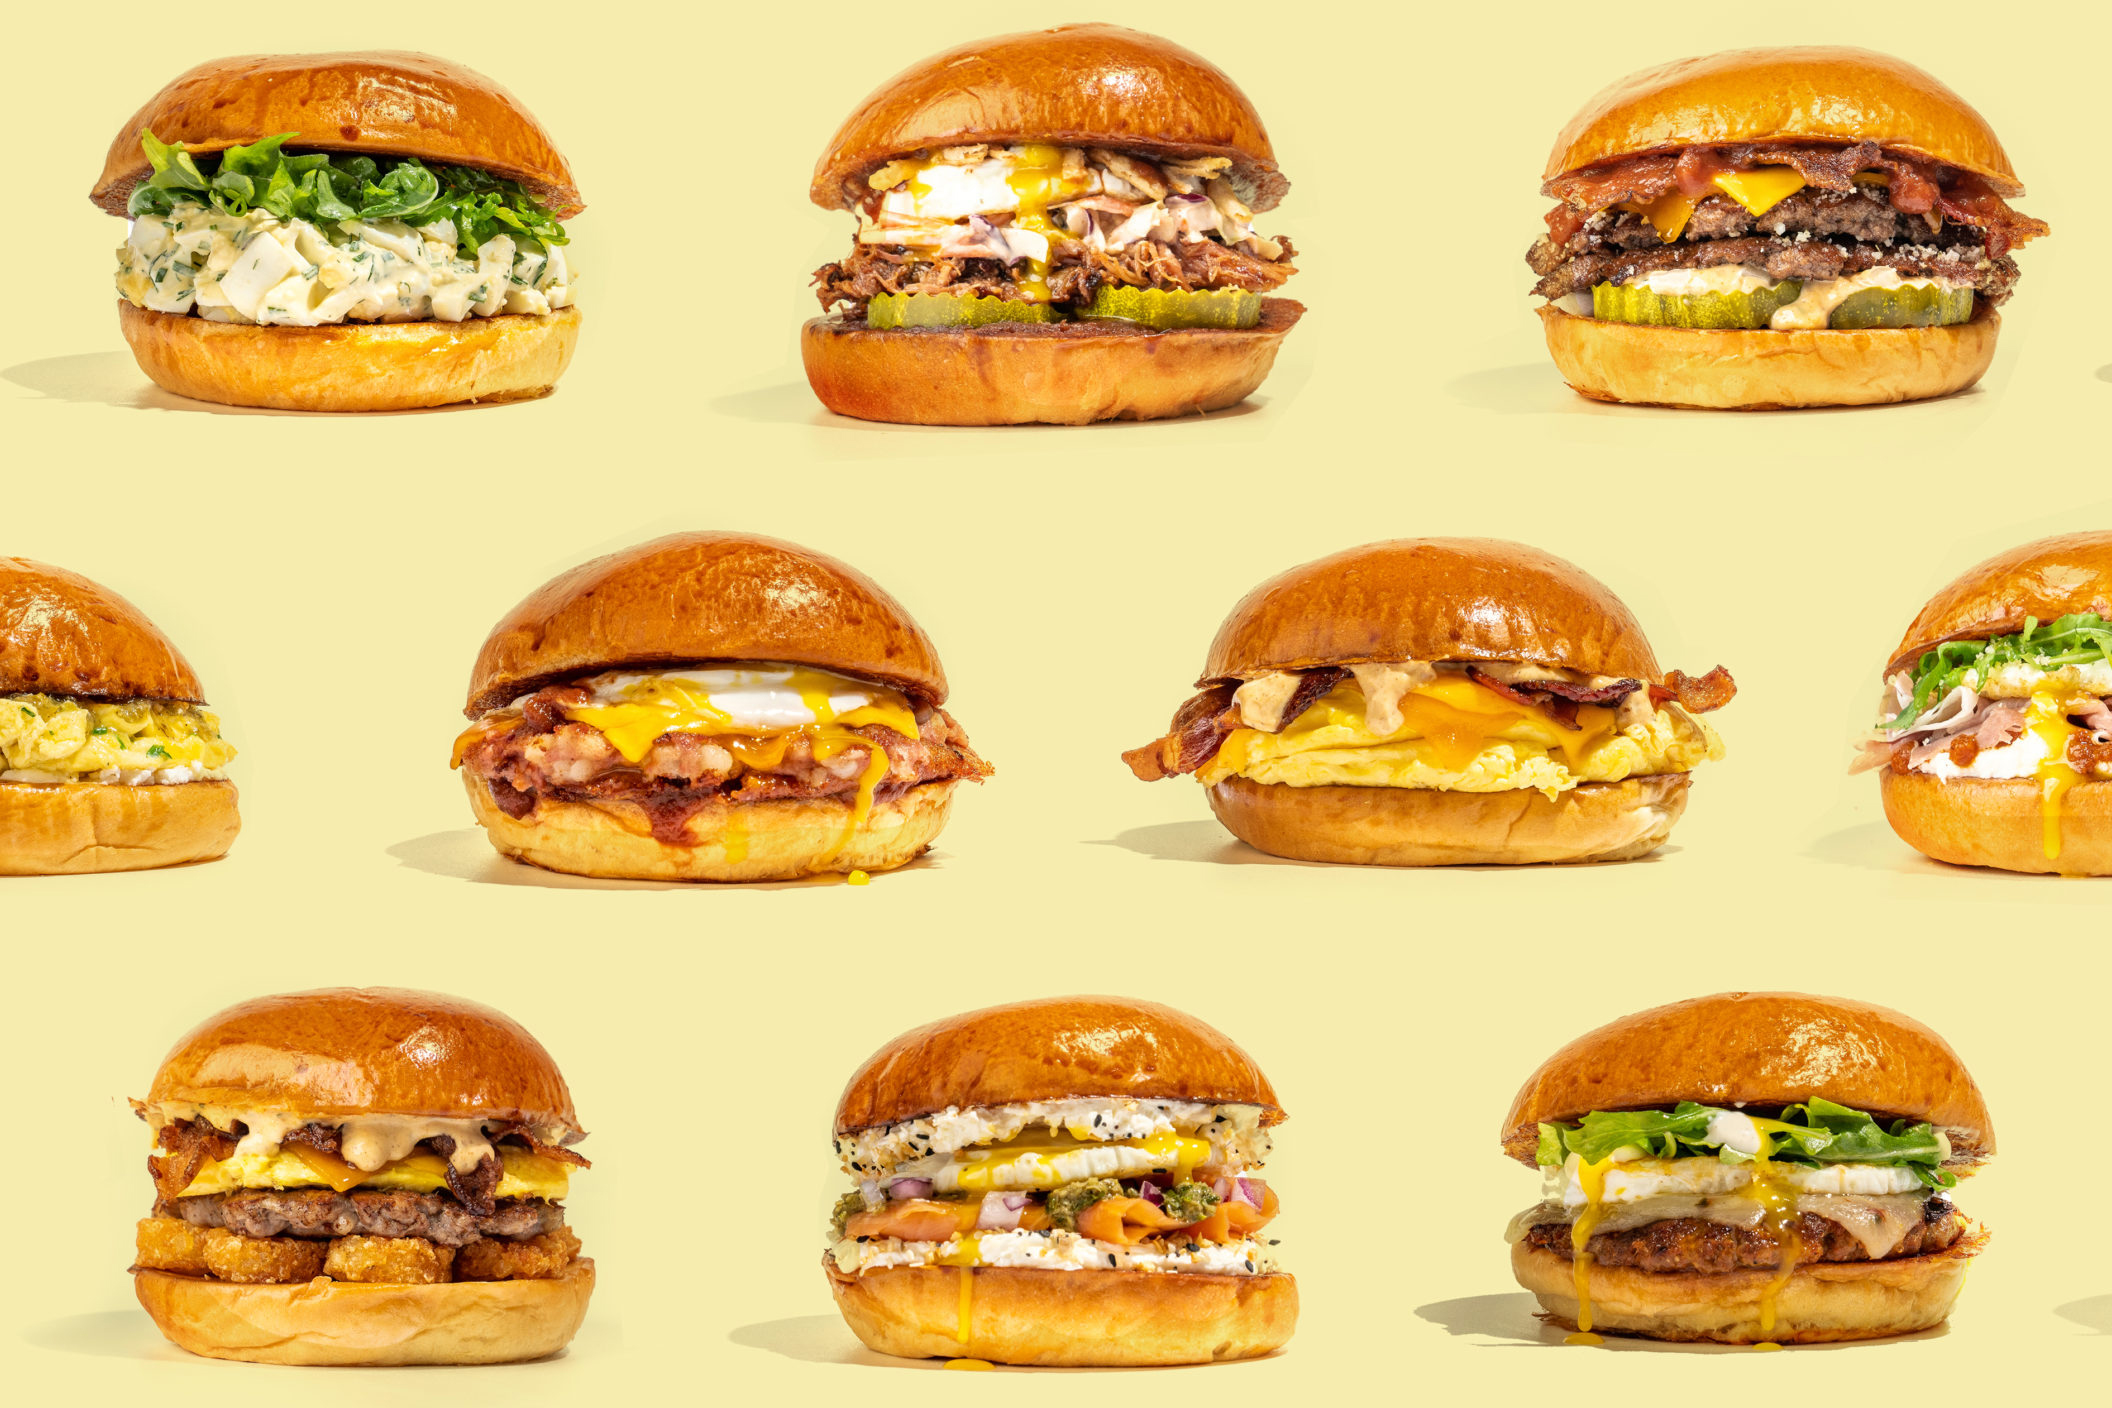 The broad selection of breakfast and lunch sandwiches at Cracked